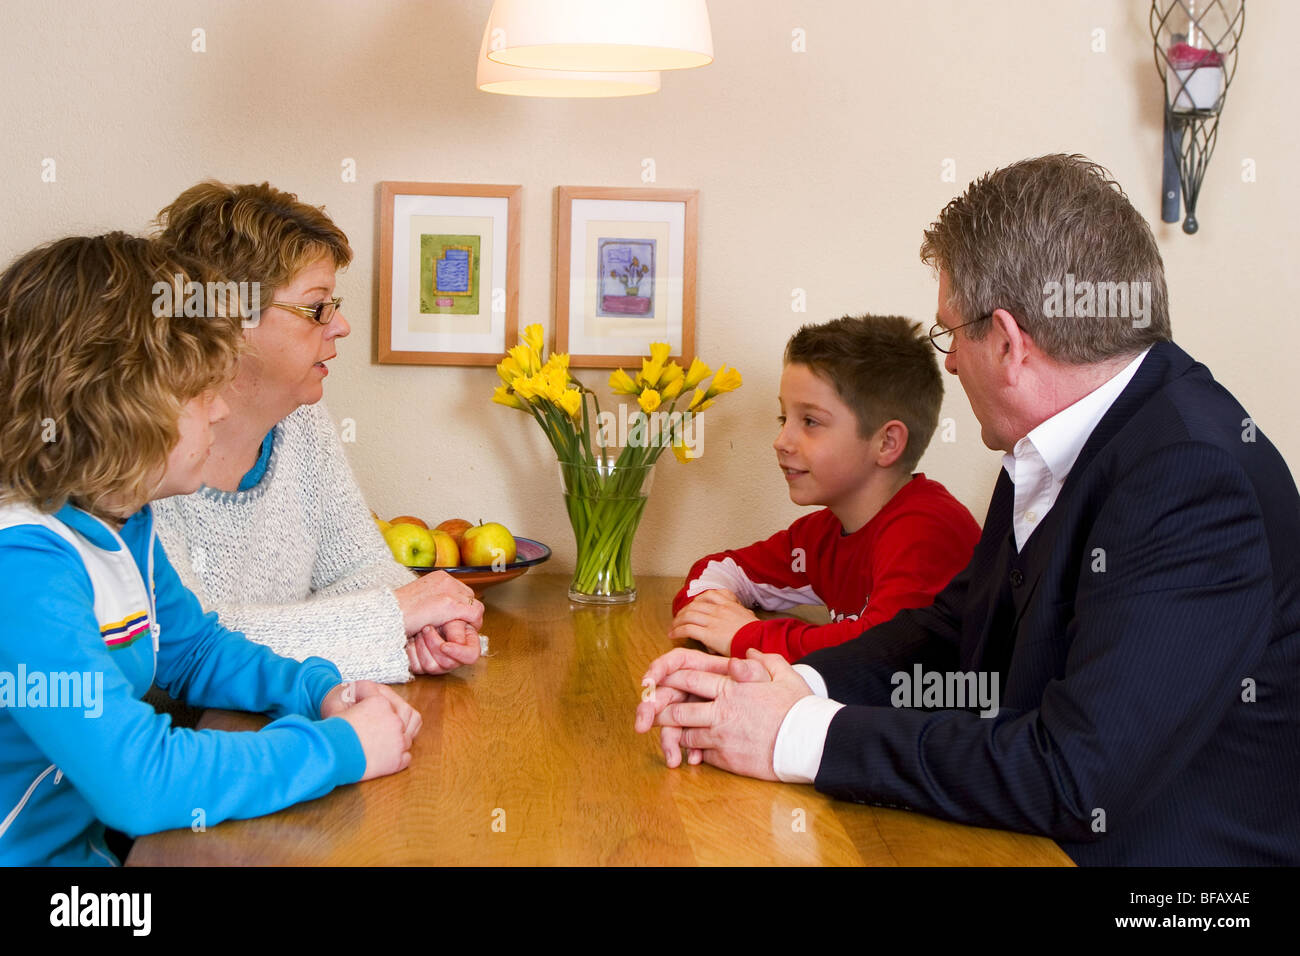 Parents with two children having a family meeting - Stock Image